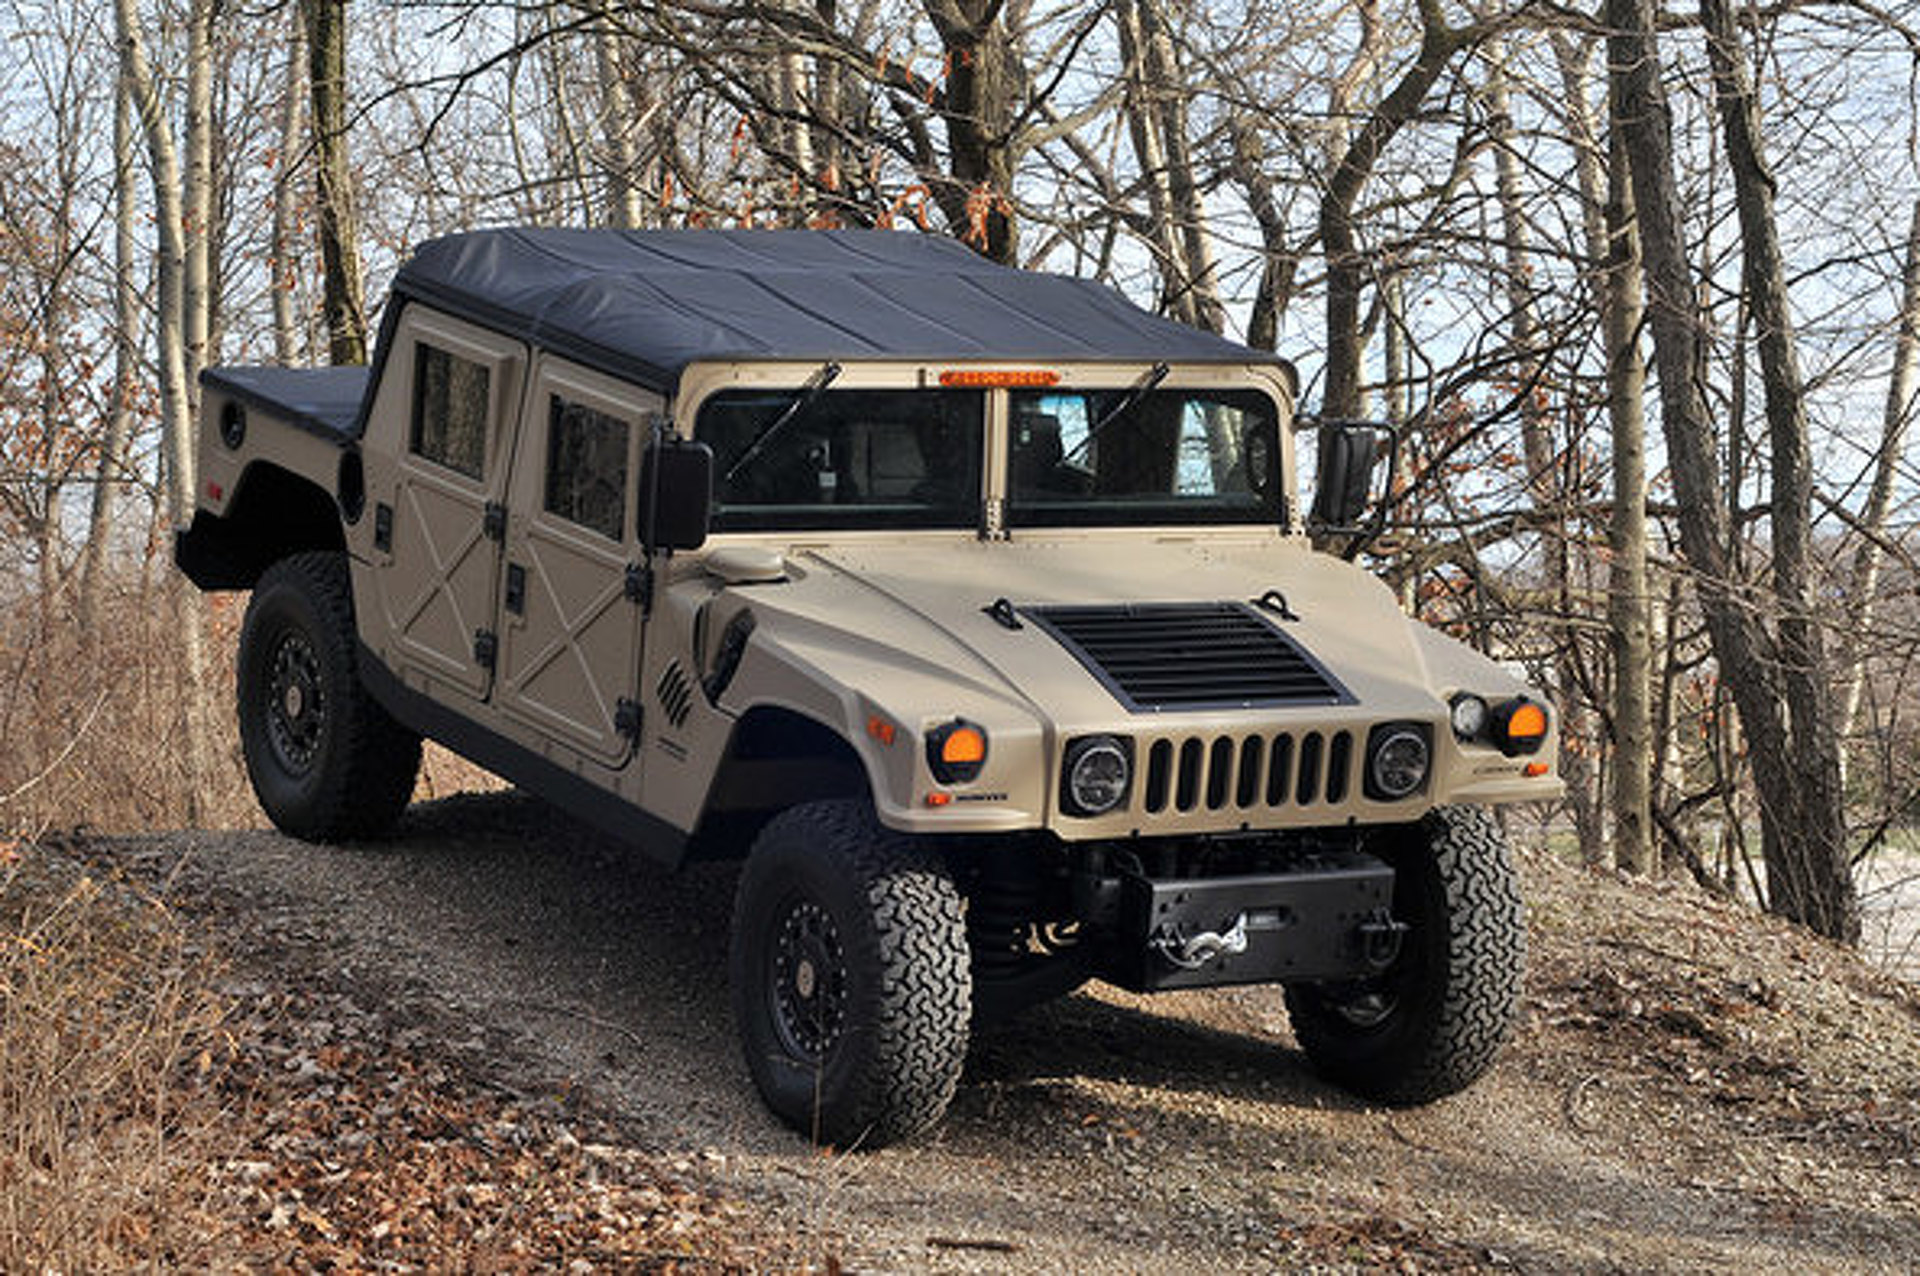 how would you power a brand new humvee kit how would you power a brand new humvee kit?